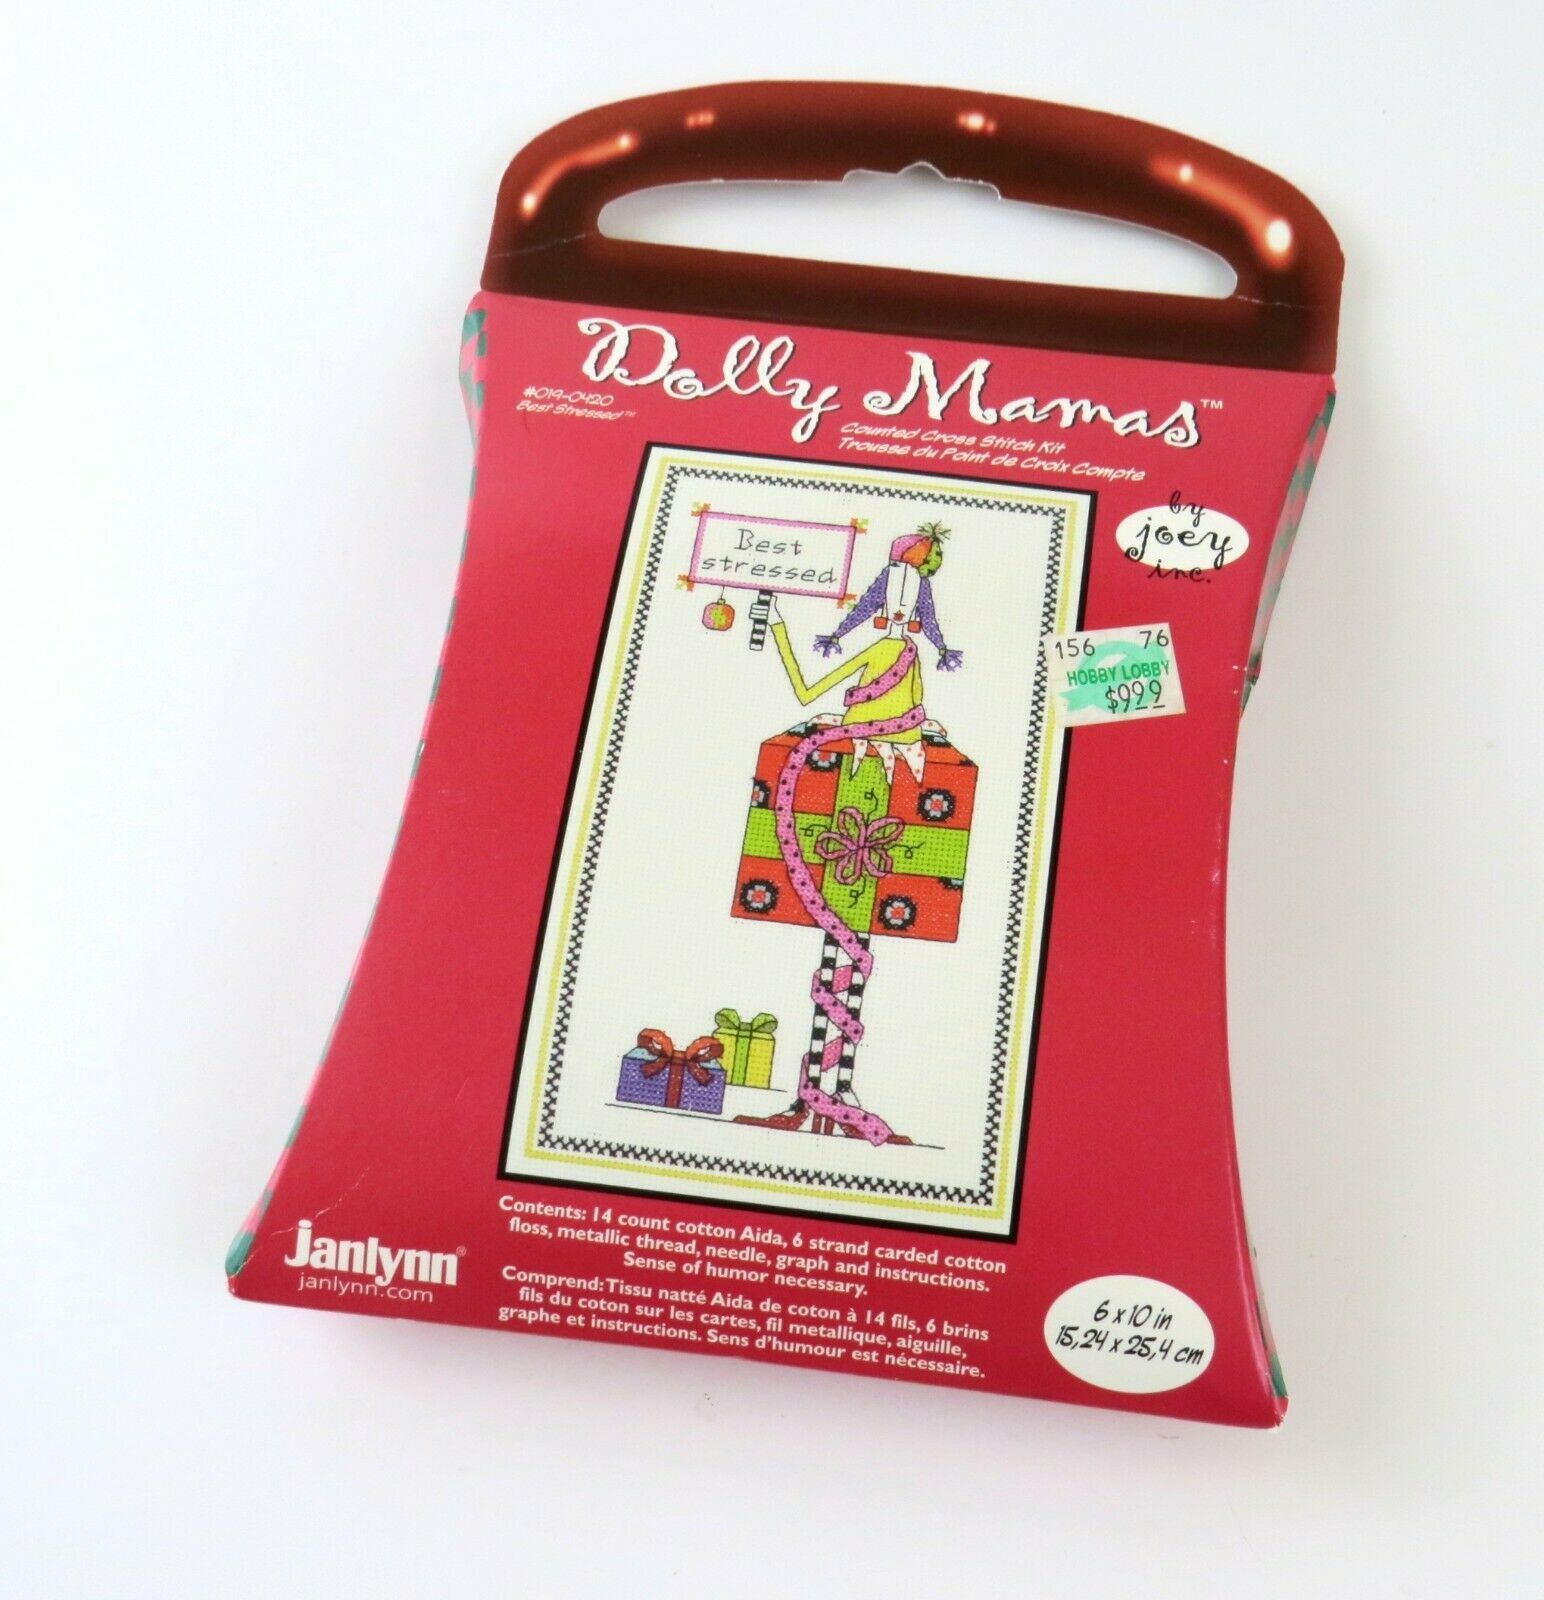 Primary image for Janlynn Dolly Mamas 'Best Stressed' Cross Stitch Kit Craft, New Old Stock